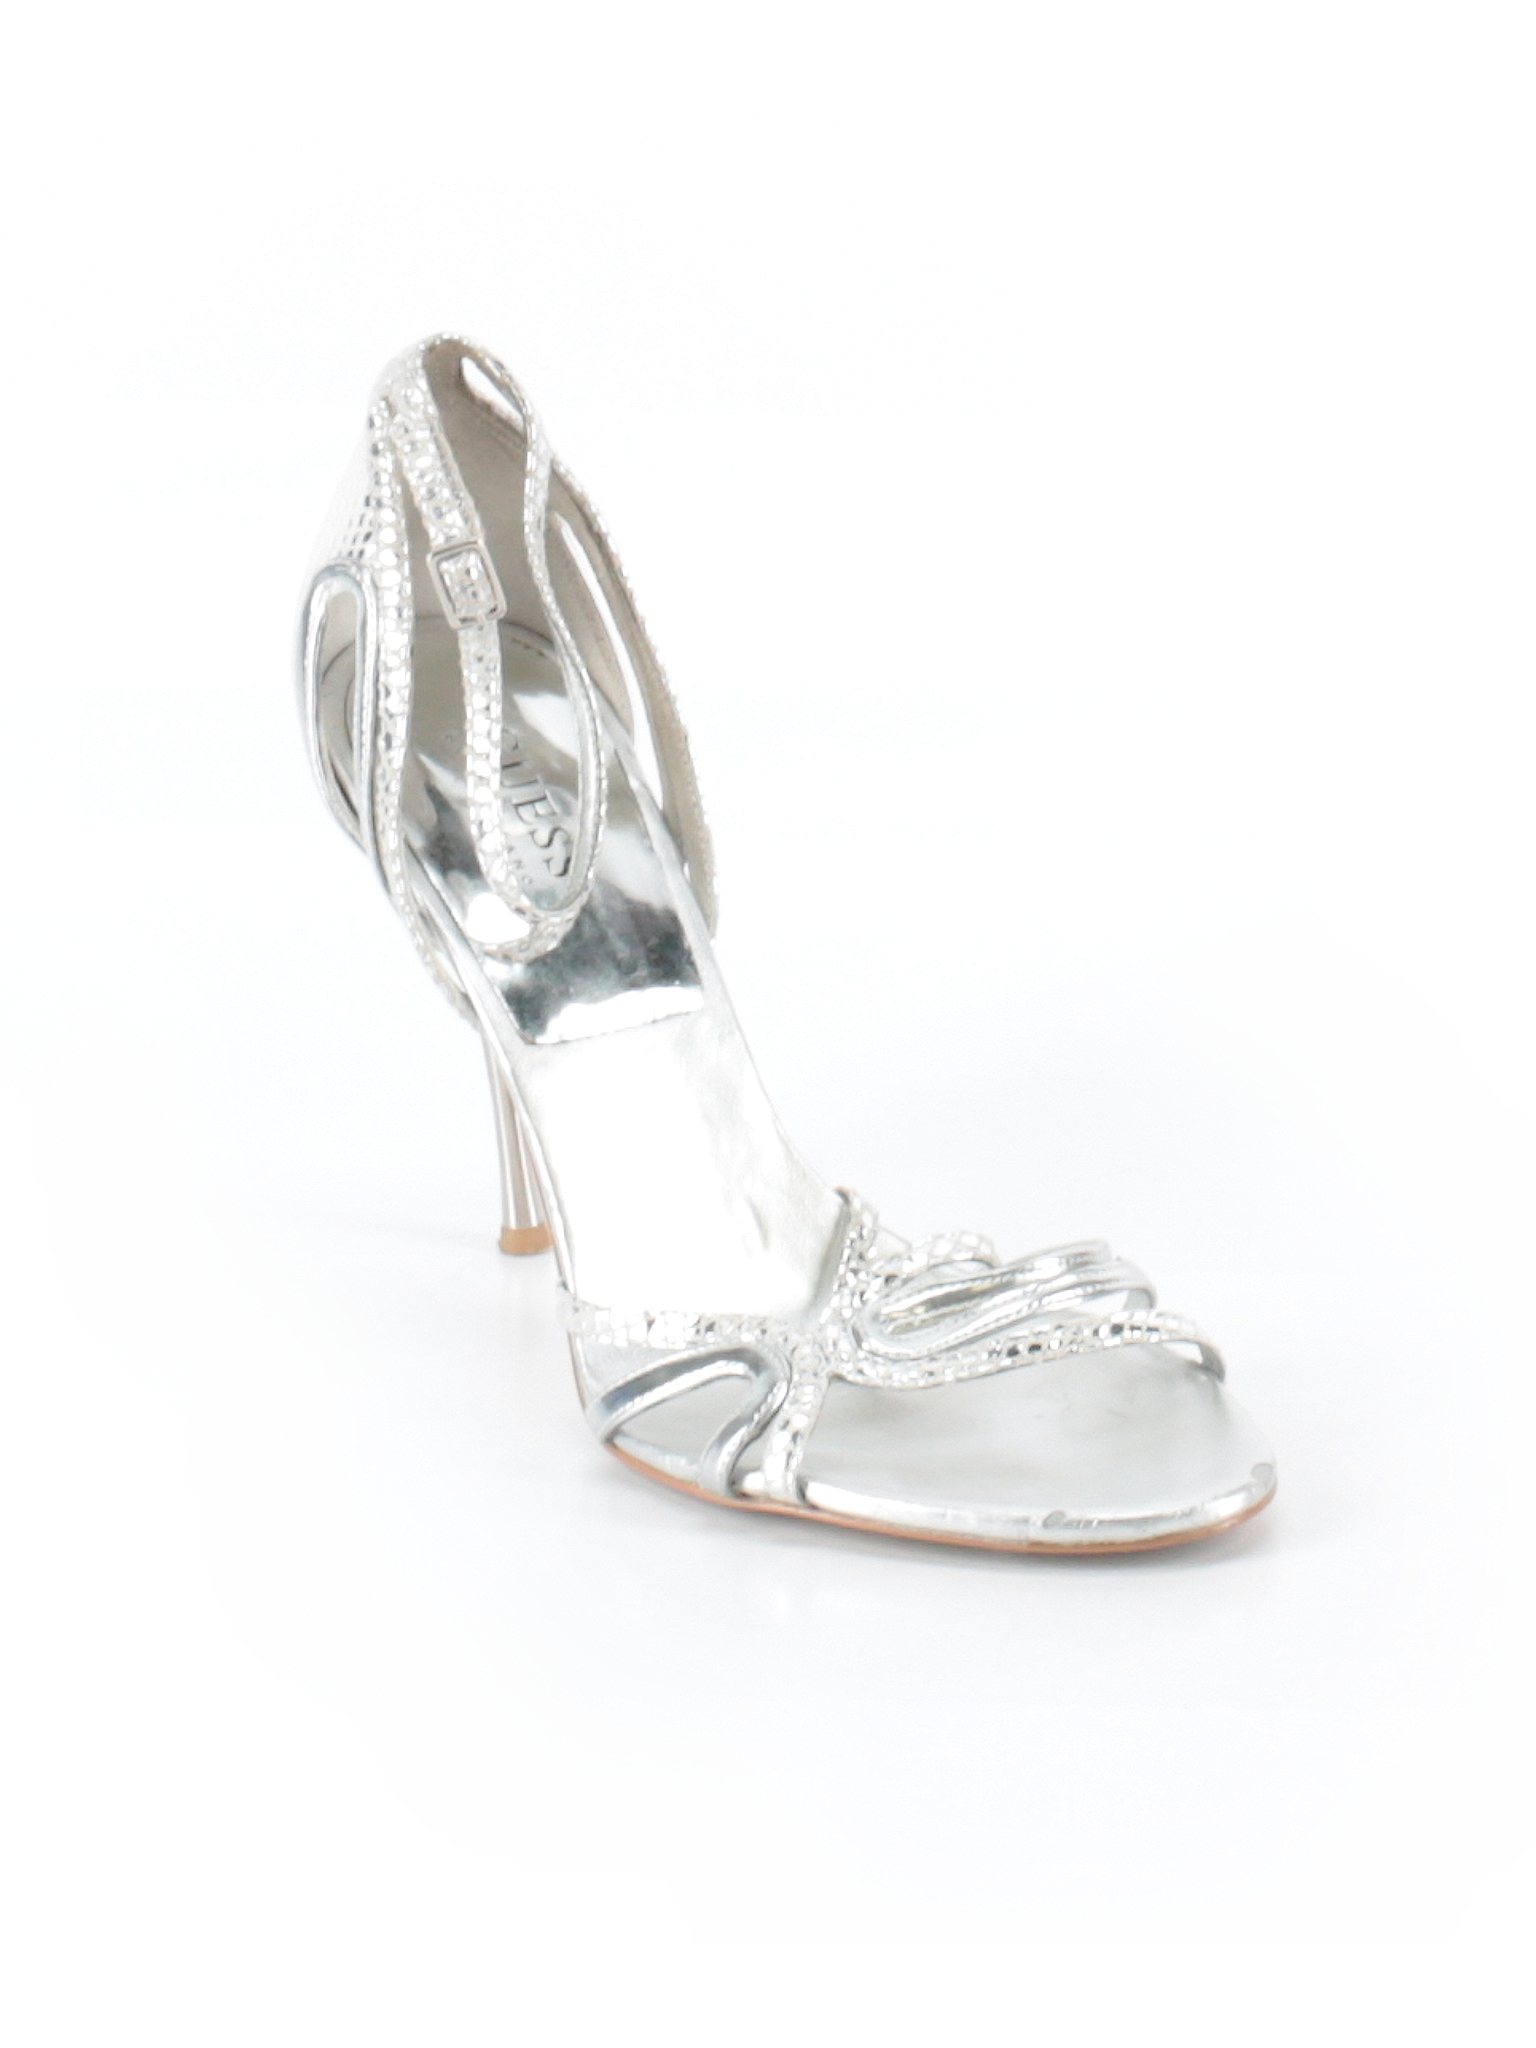 fb6ddbfcf2c Heels | Products | Heels, Silver heels, Shoes